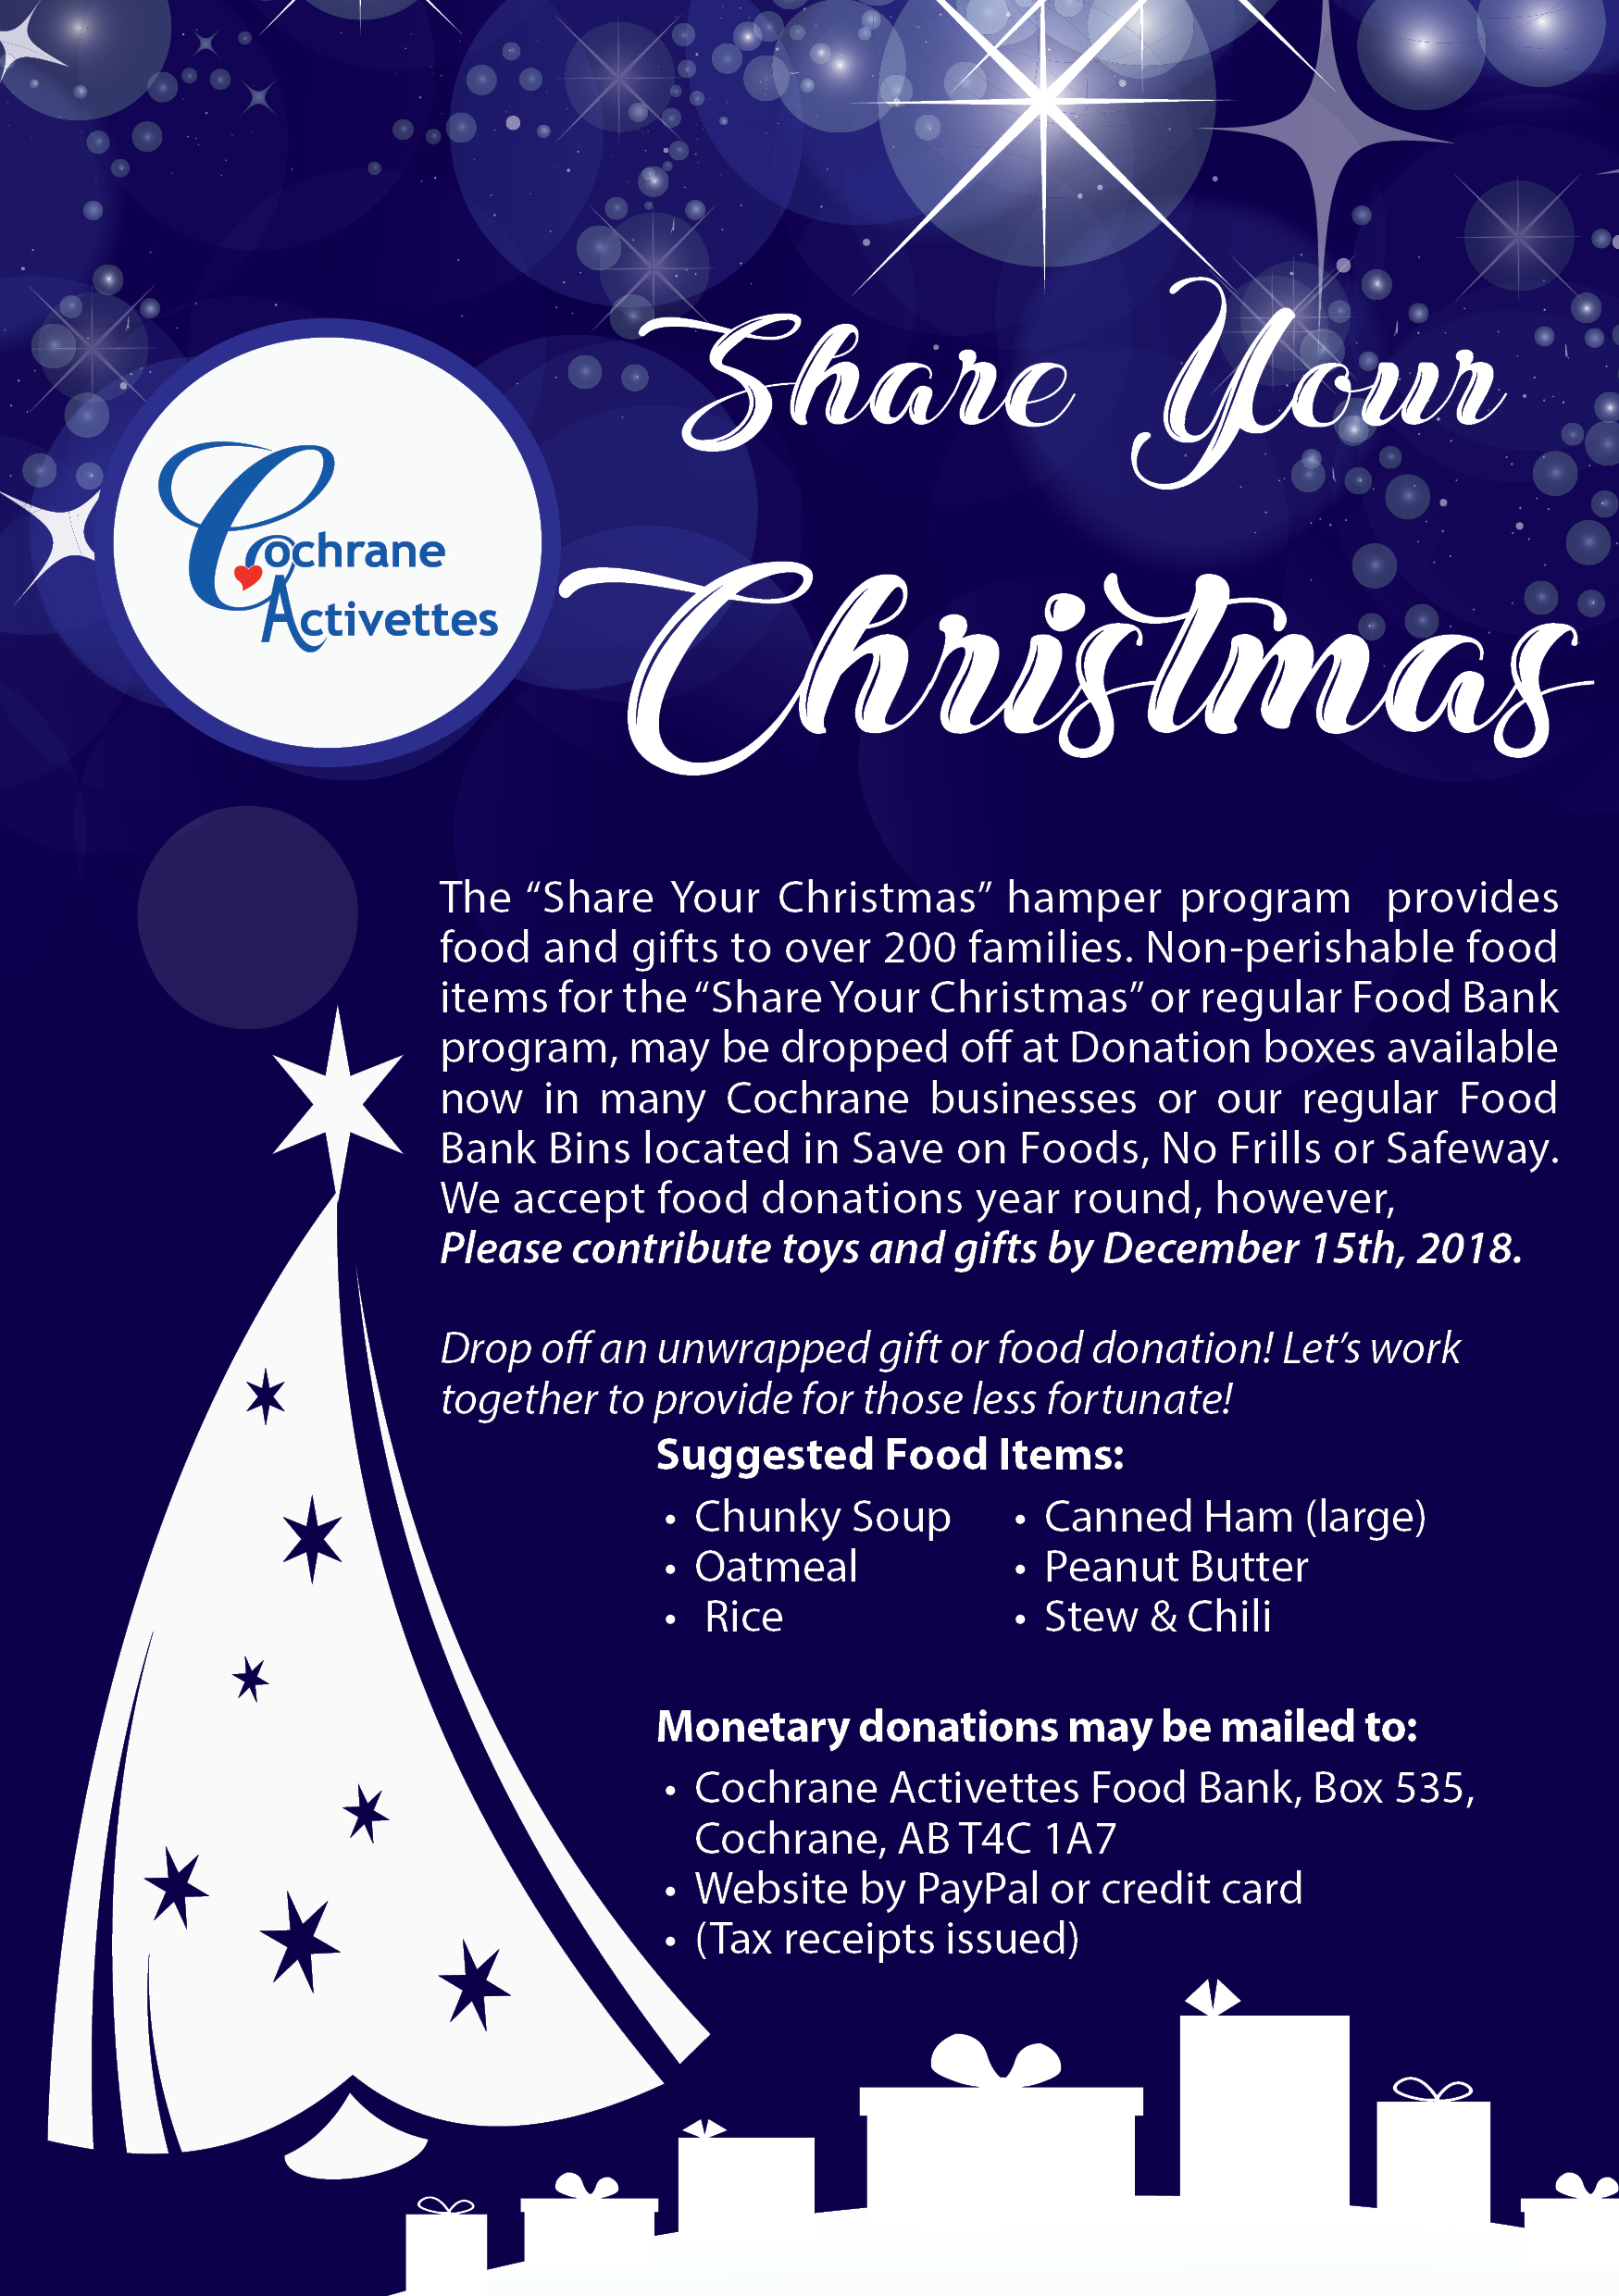 Share Your Christmas Donations – Cochrane Activettes